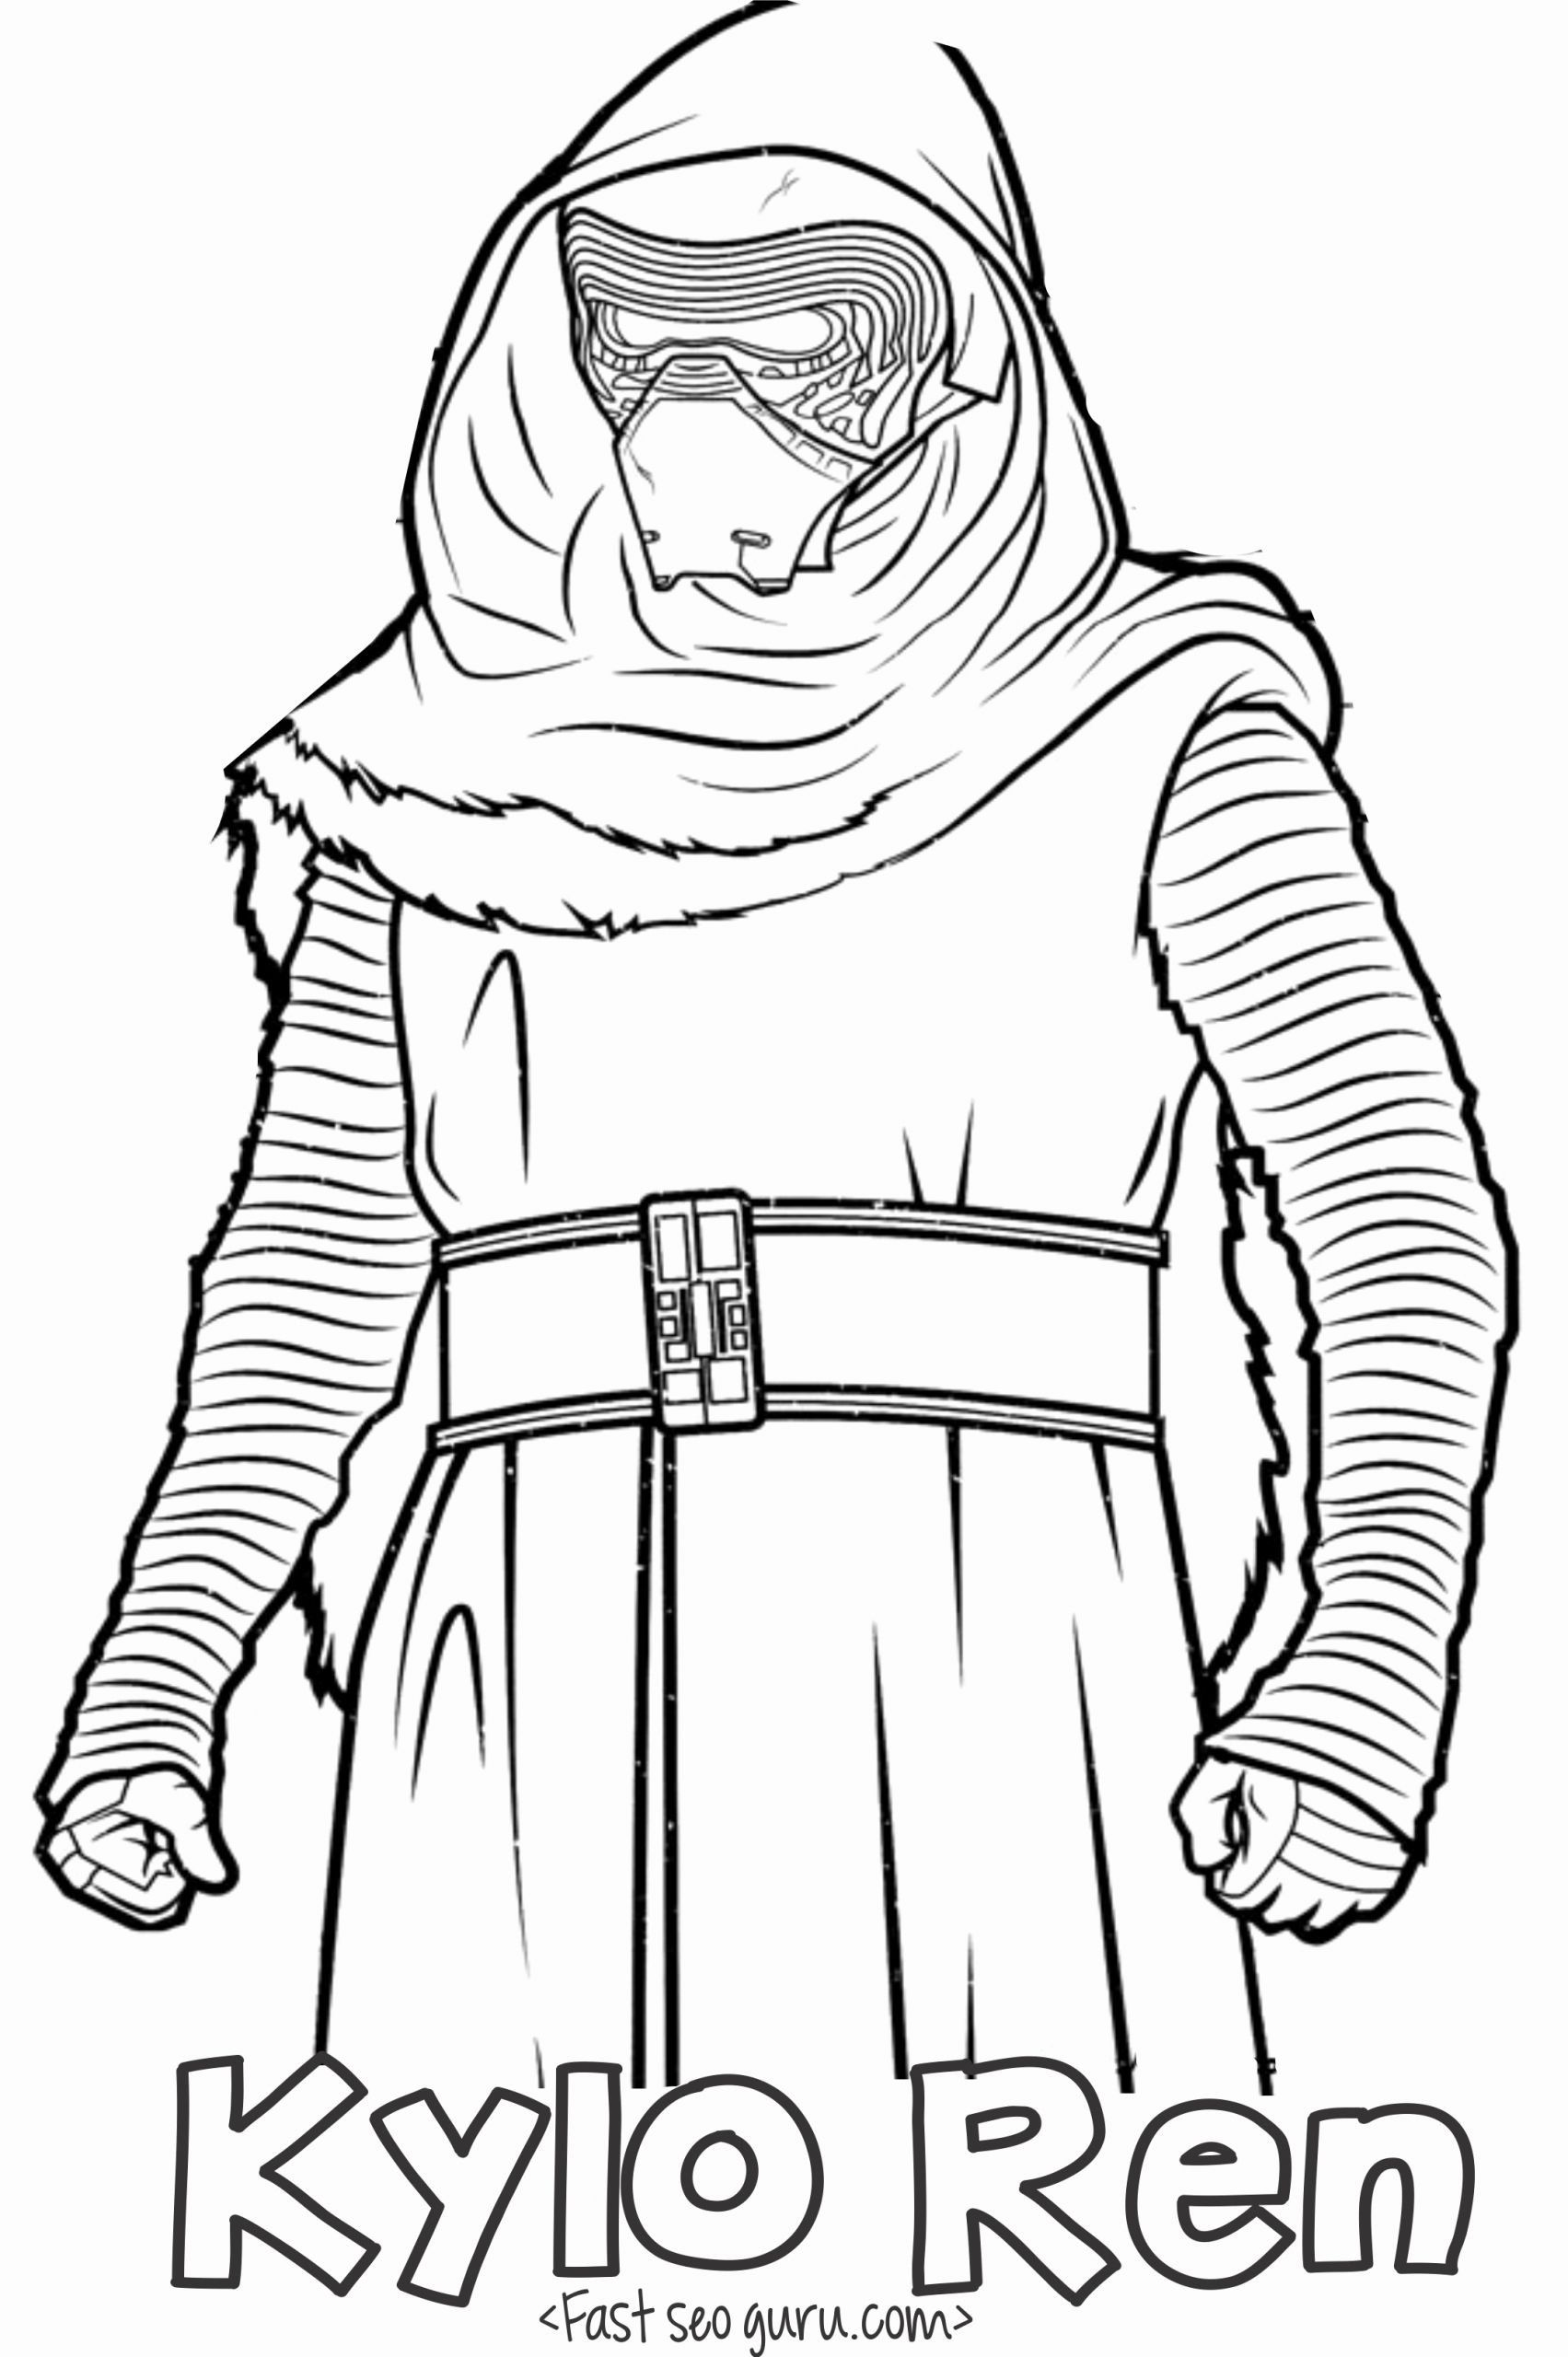 Kylo Ren Coloring Page New Kylo Ren Coloring Pages Coloring Pages Coloring Pages For Kids Coloring Pages Star Coloring Pages